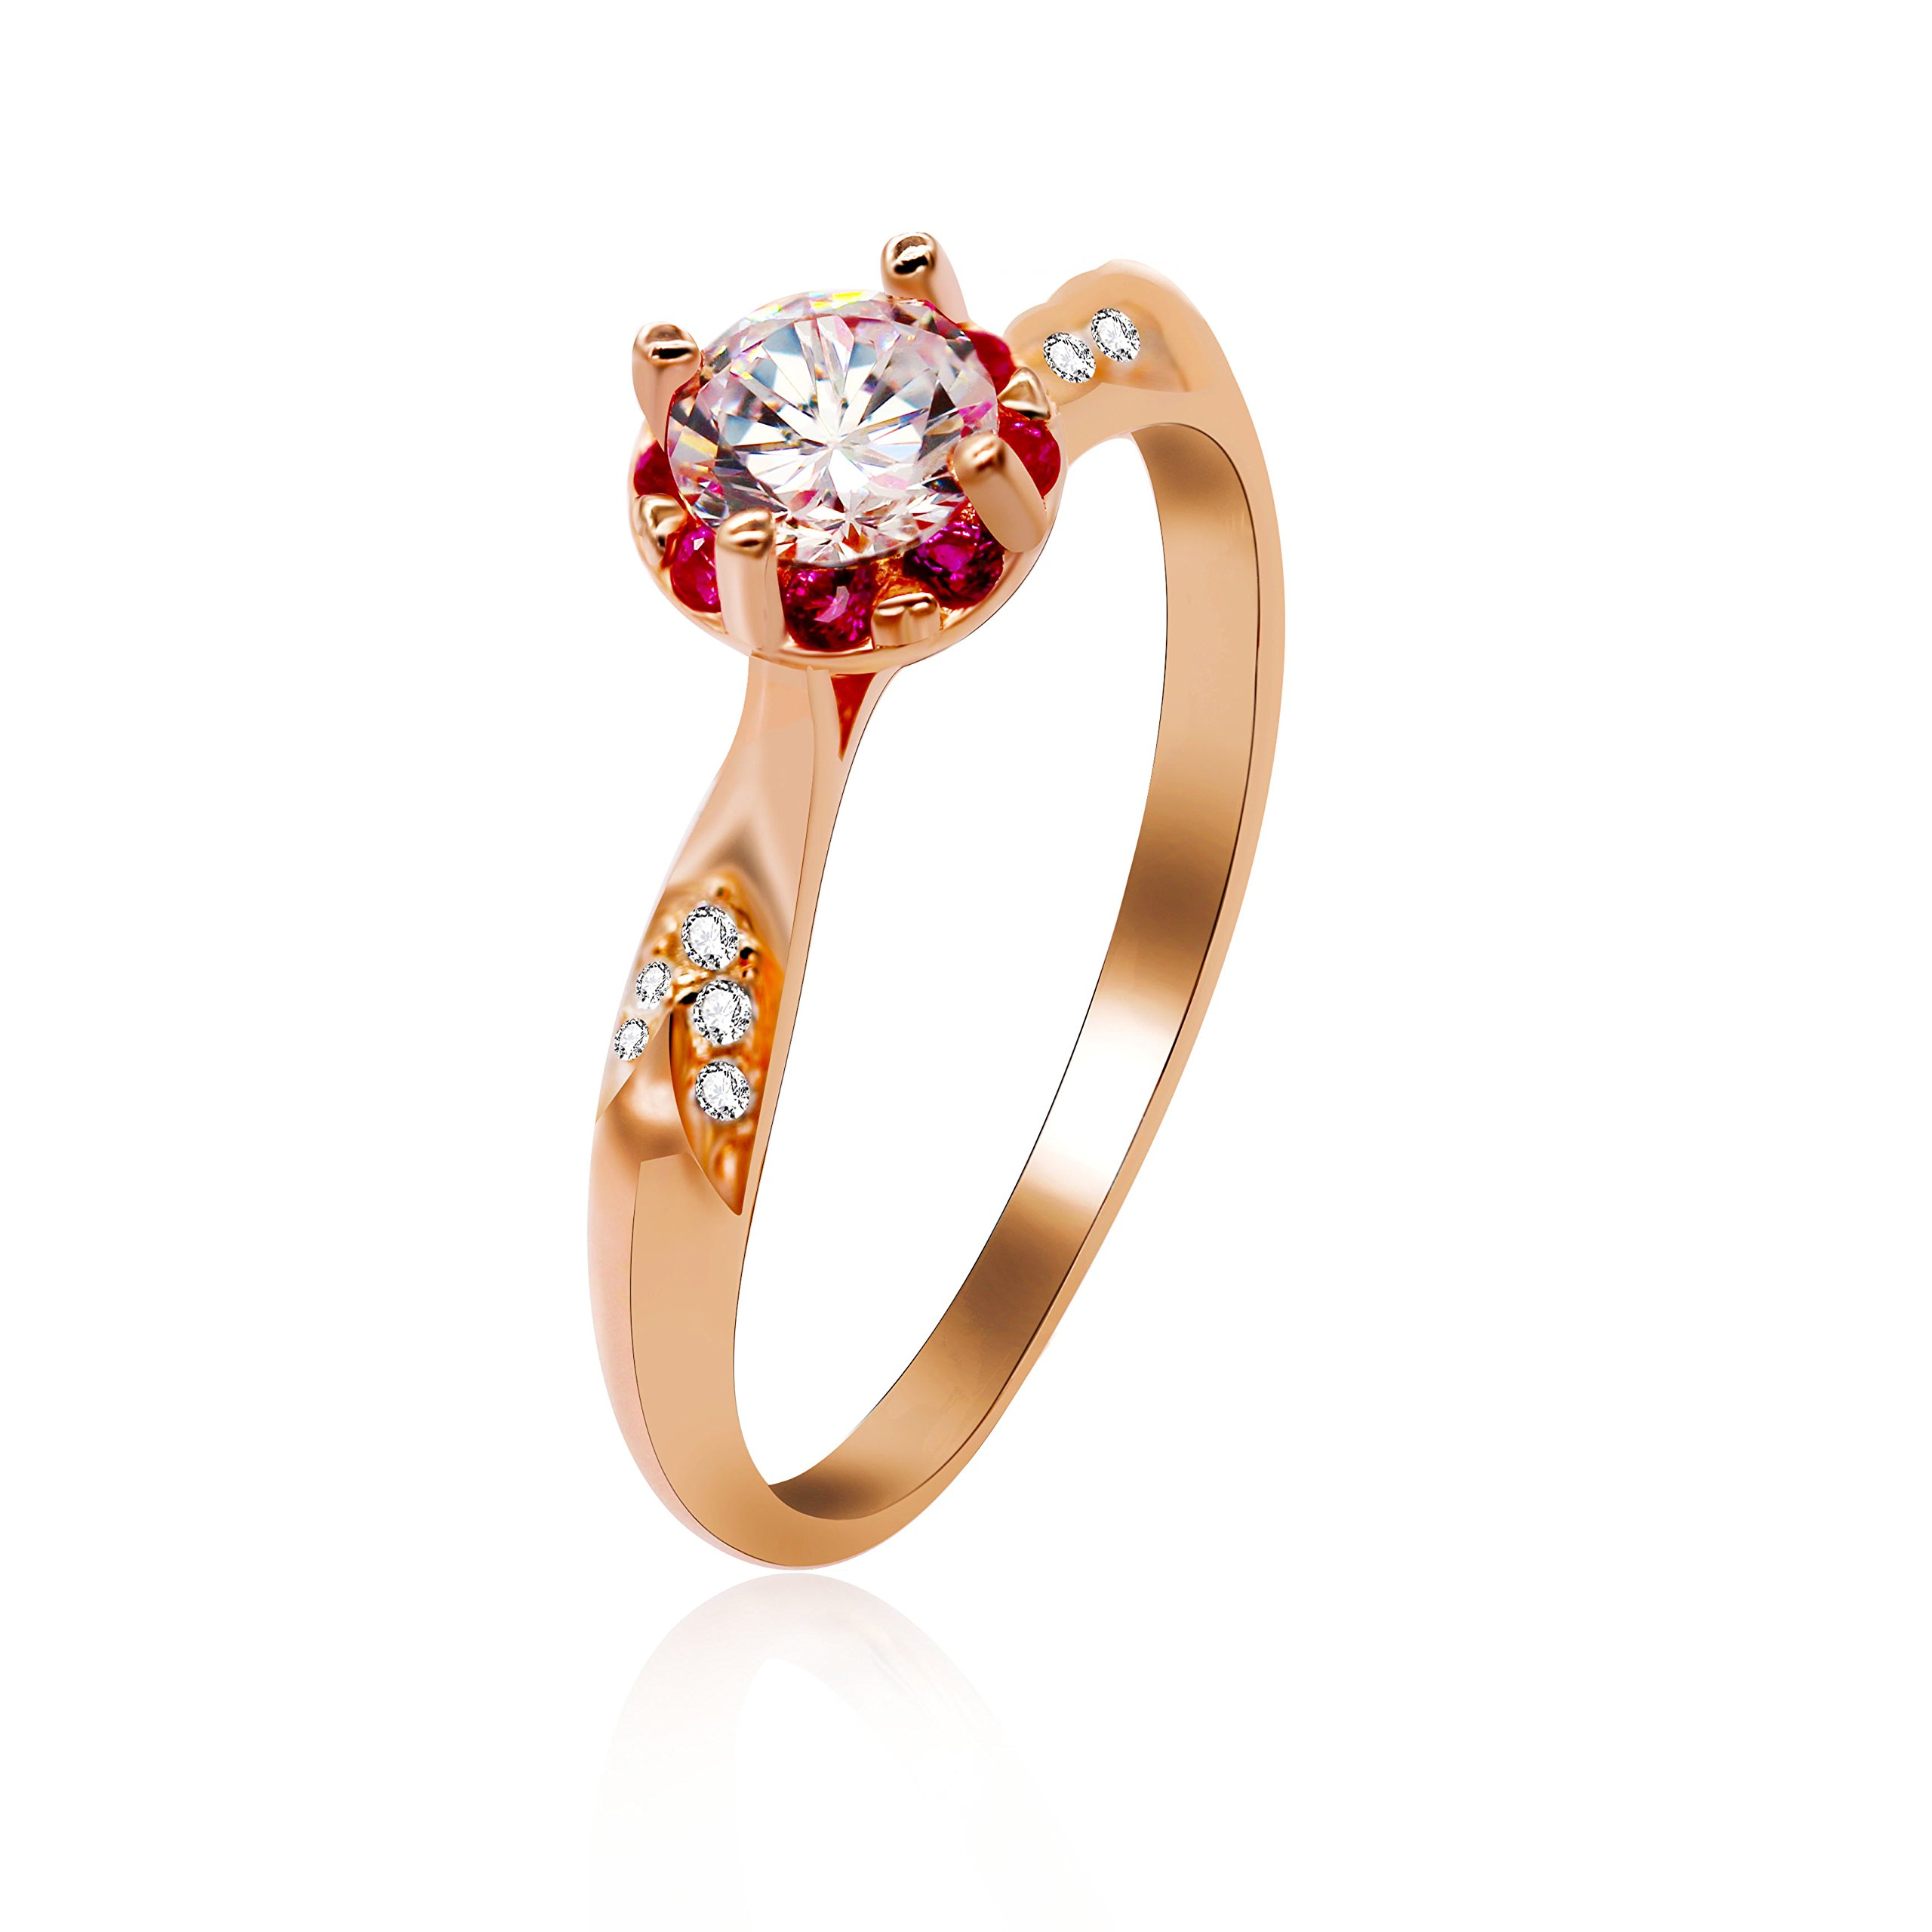 Uloveido 2g 925 Sterling Silver Rose Gold Plated Serend Round Cubic Zirconia Solitaire Wedding Engagement Rings Whte & Pink CZ in Flower Shape Size 5 LJ091